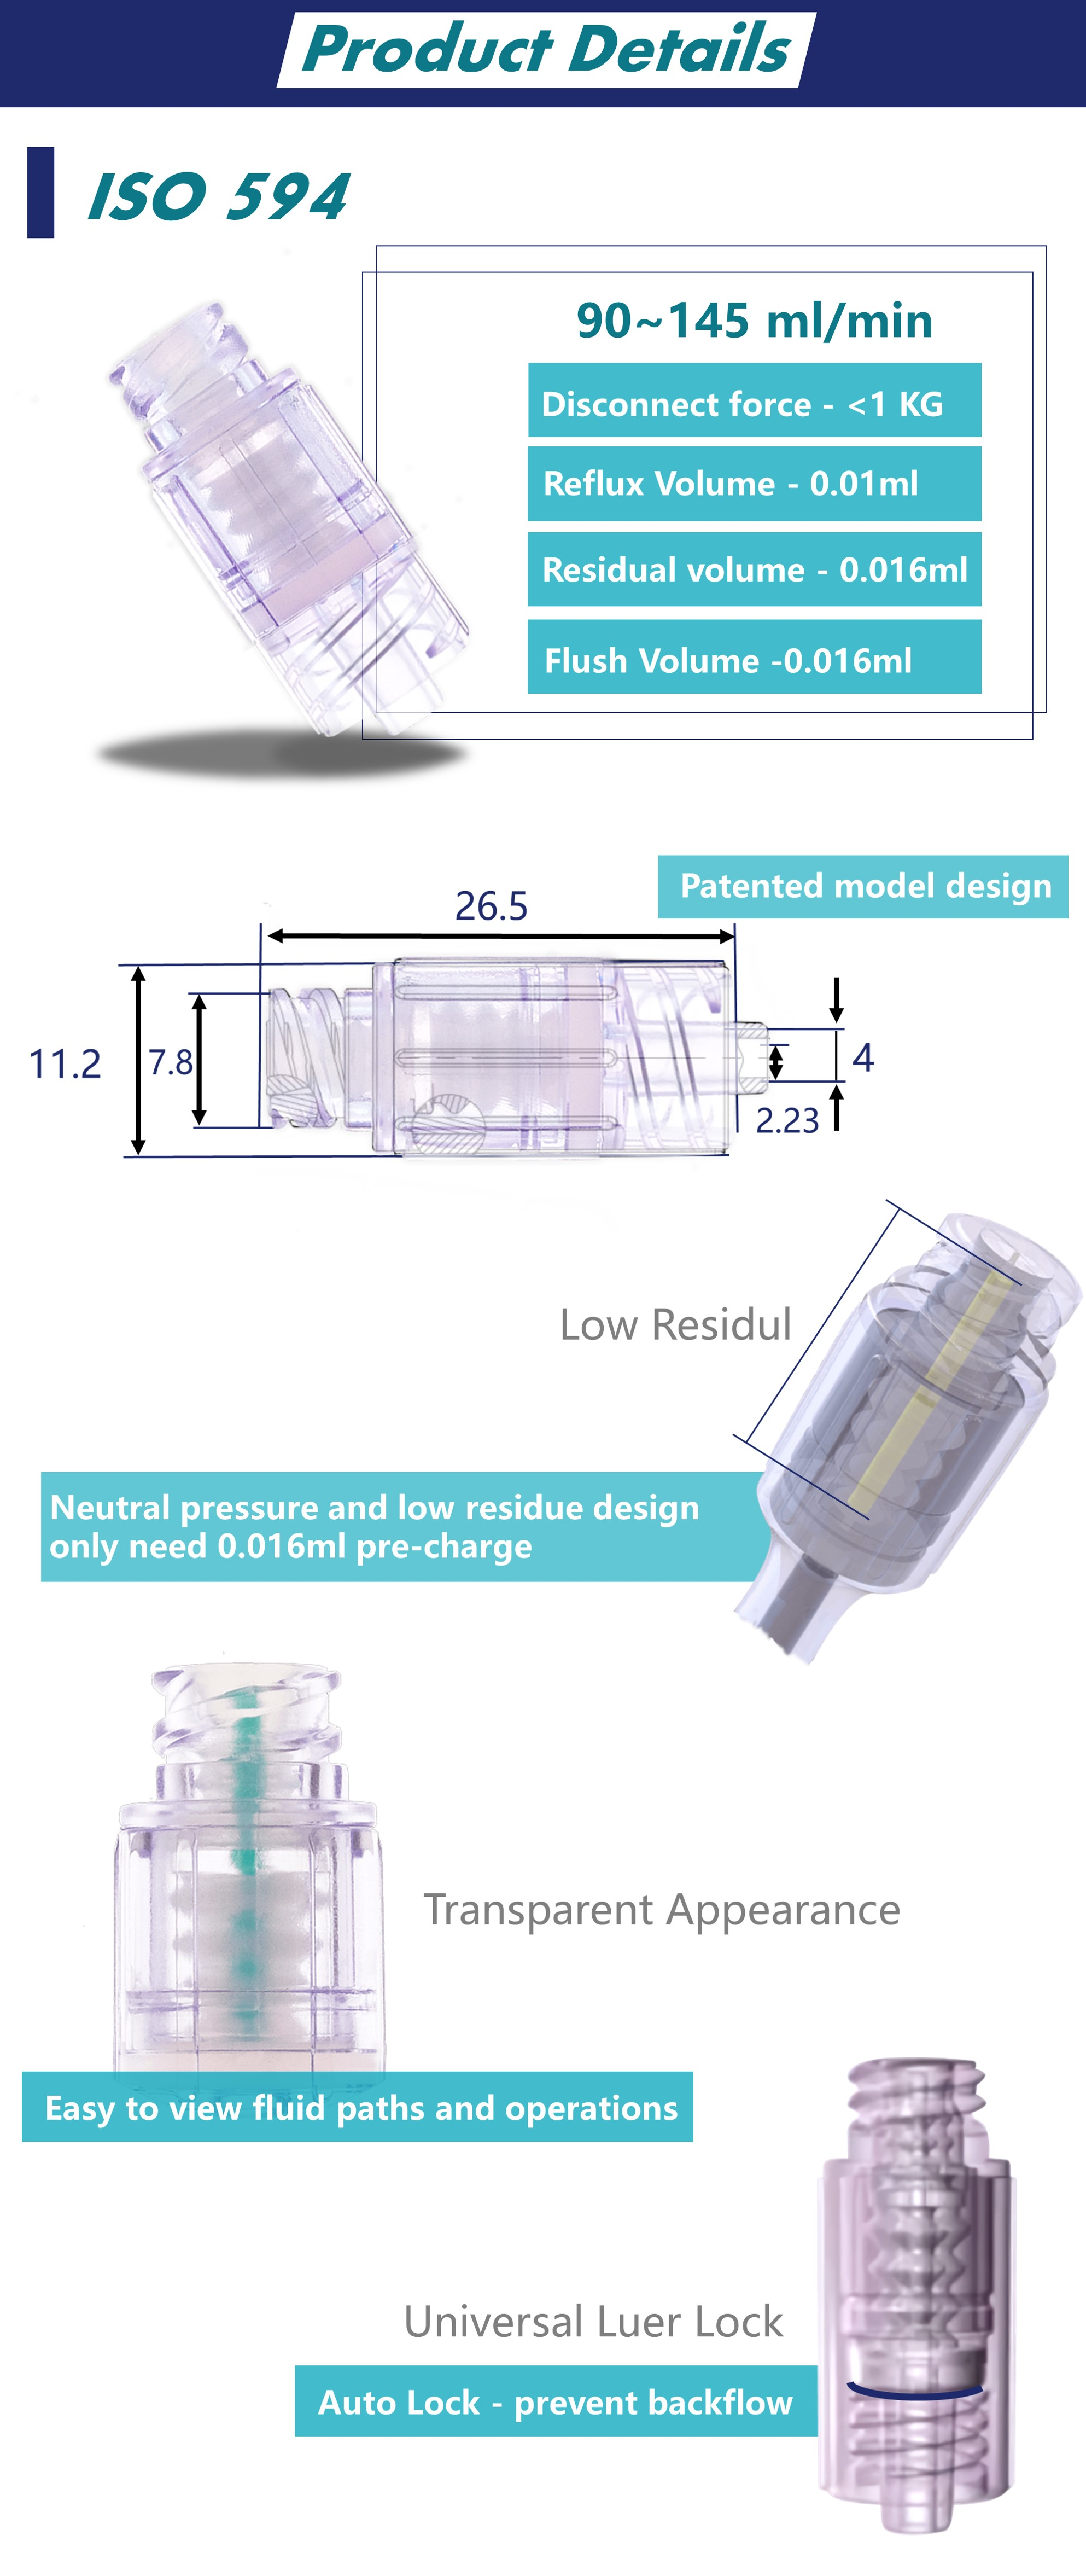 Needle free Low Residual Neutral Pressure Infusion Components Made in Taiwan